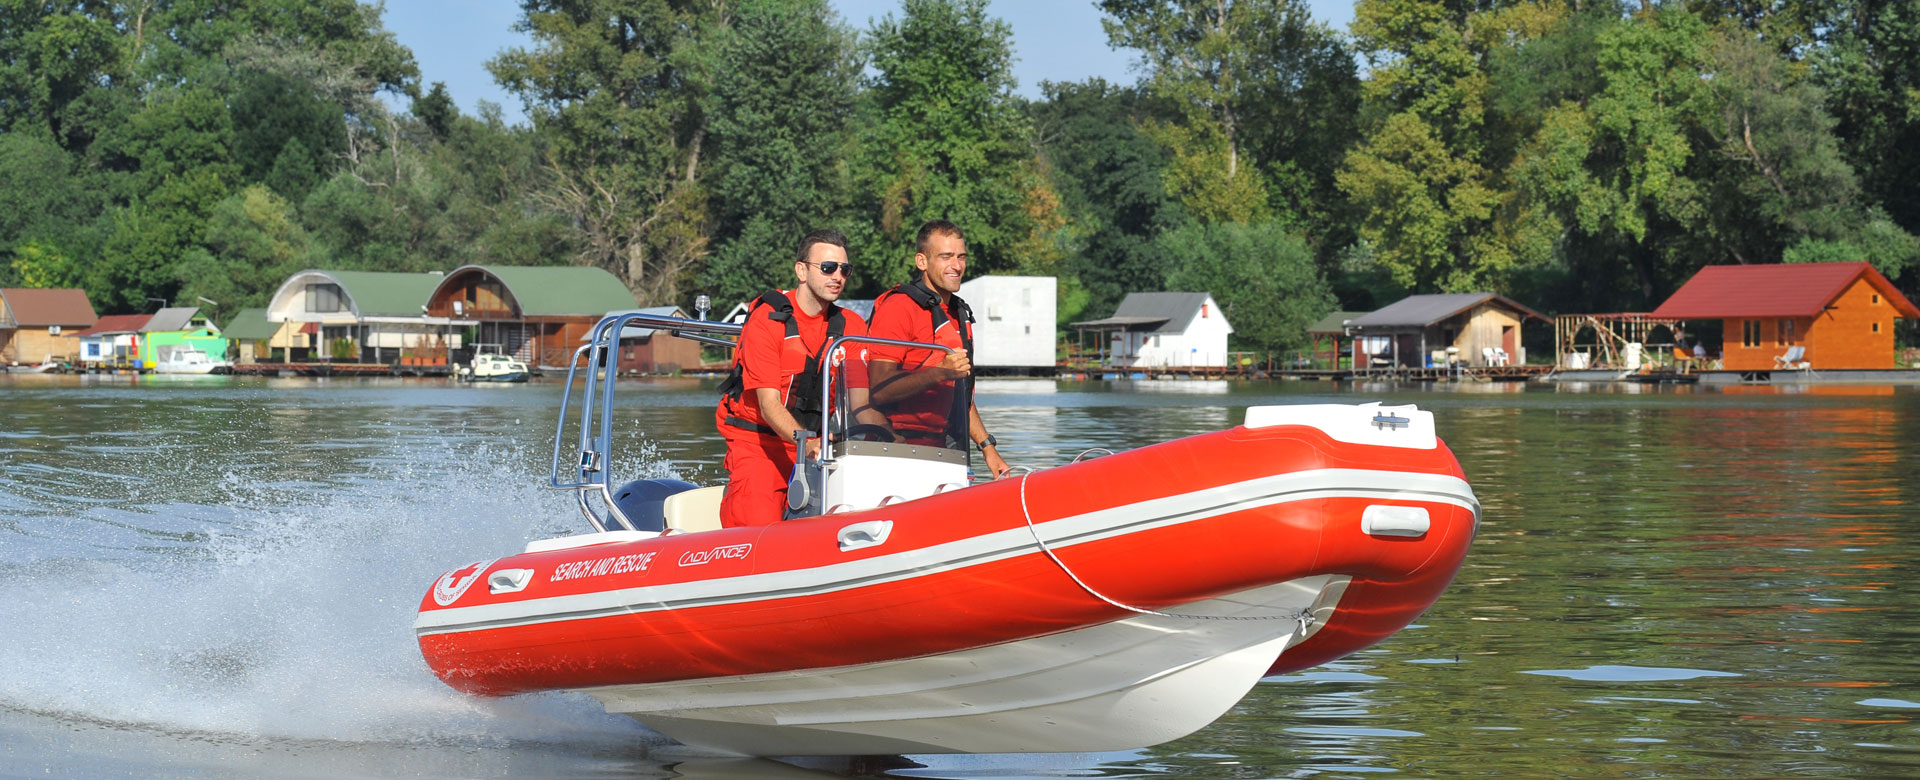 advanceboat-searc-and-rescue-slider